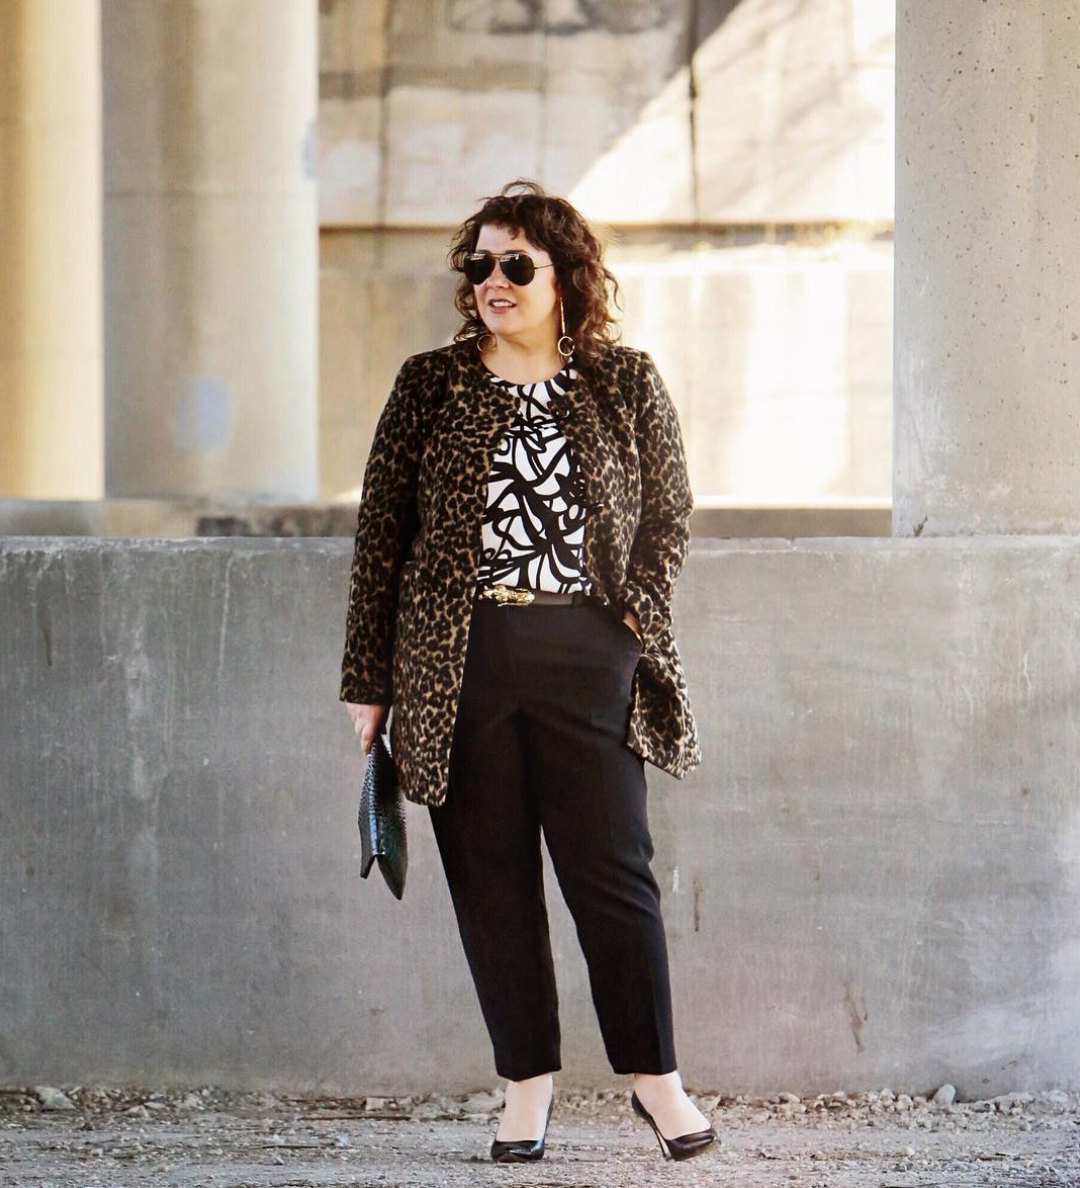 FYI, cheetah print is also blowing up! (Image via @wardrobe_oxygen)